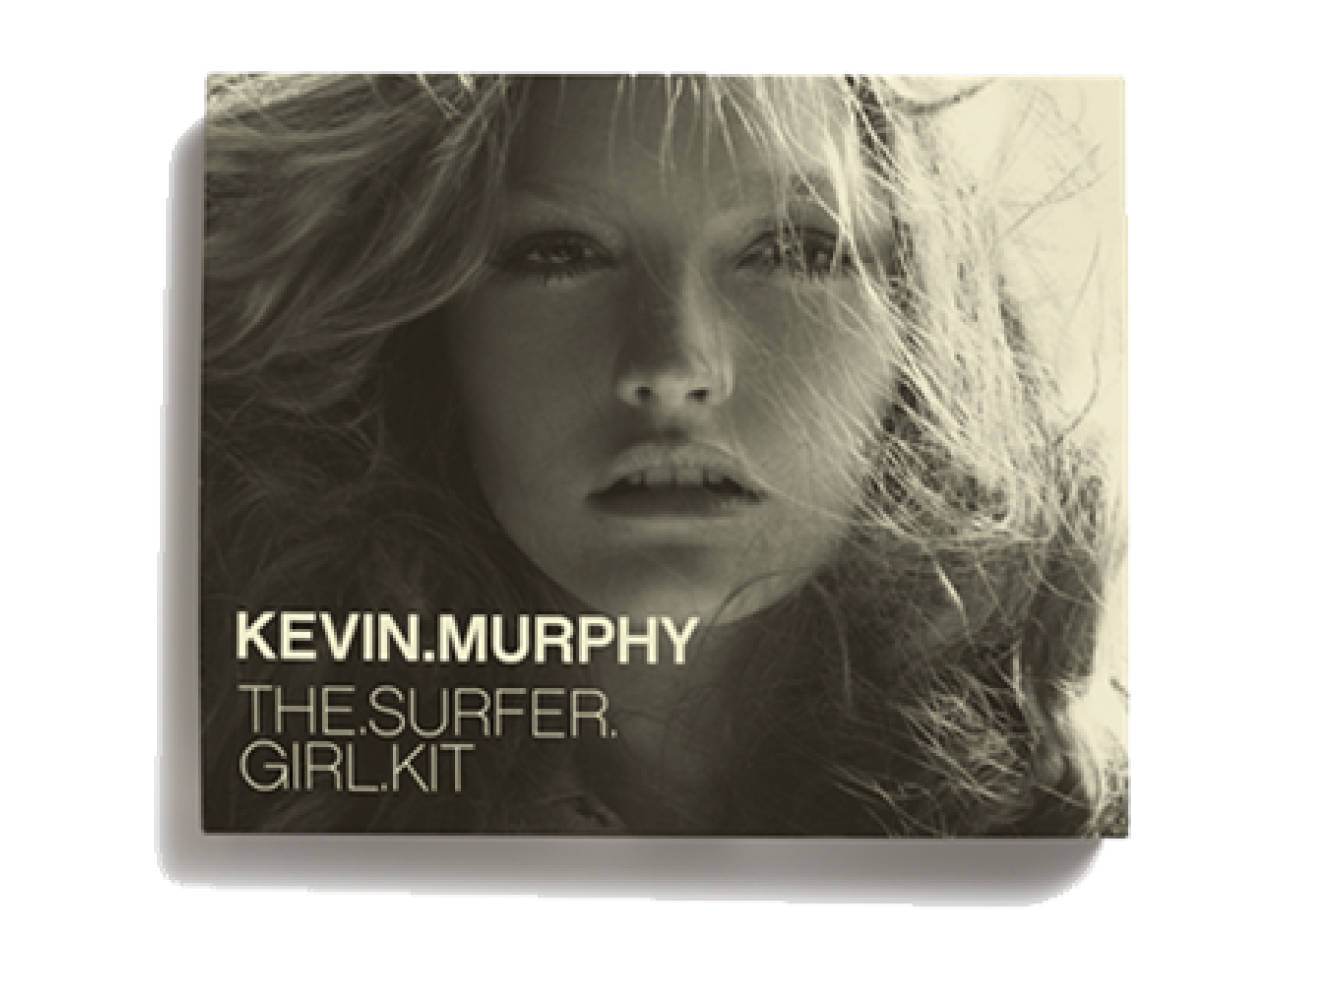 Arma Beauty - Kevin Murphy - SURFER.GIRL.KIT